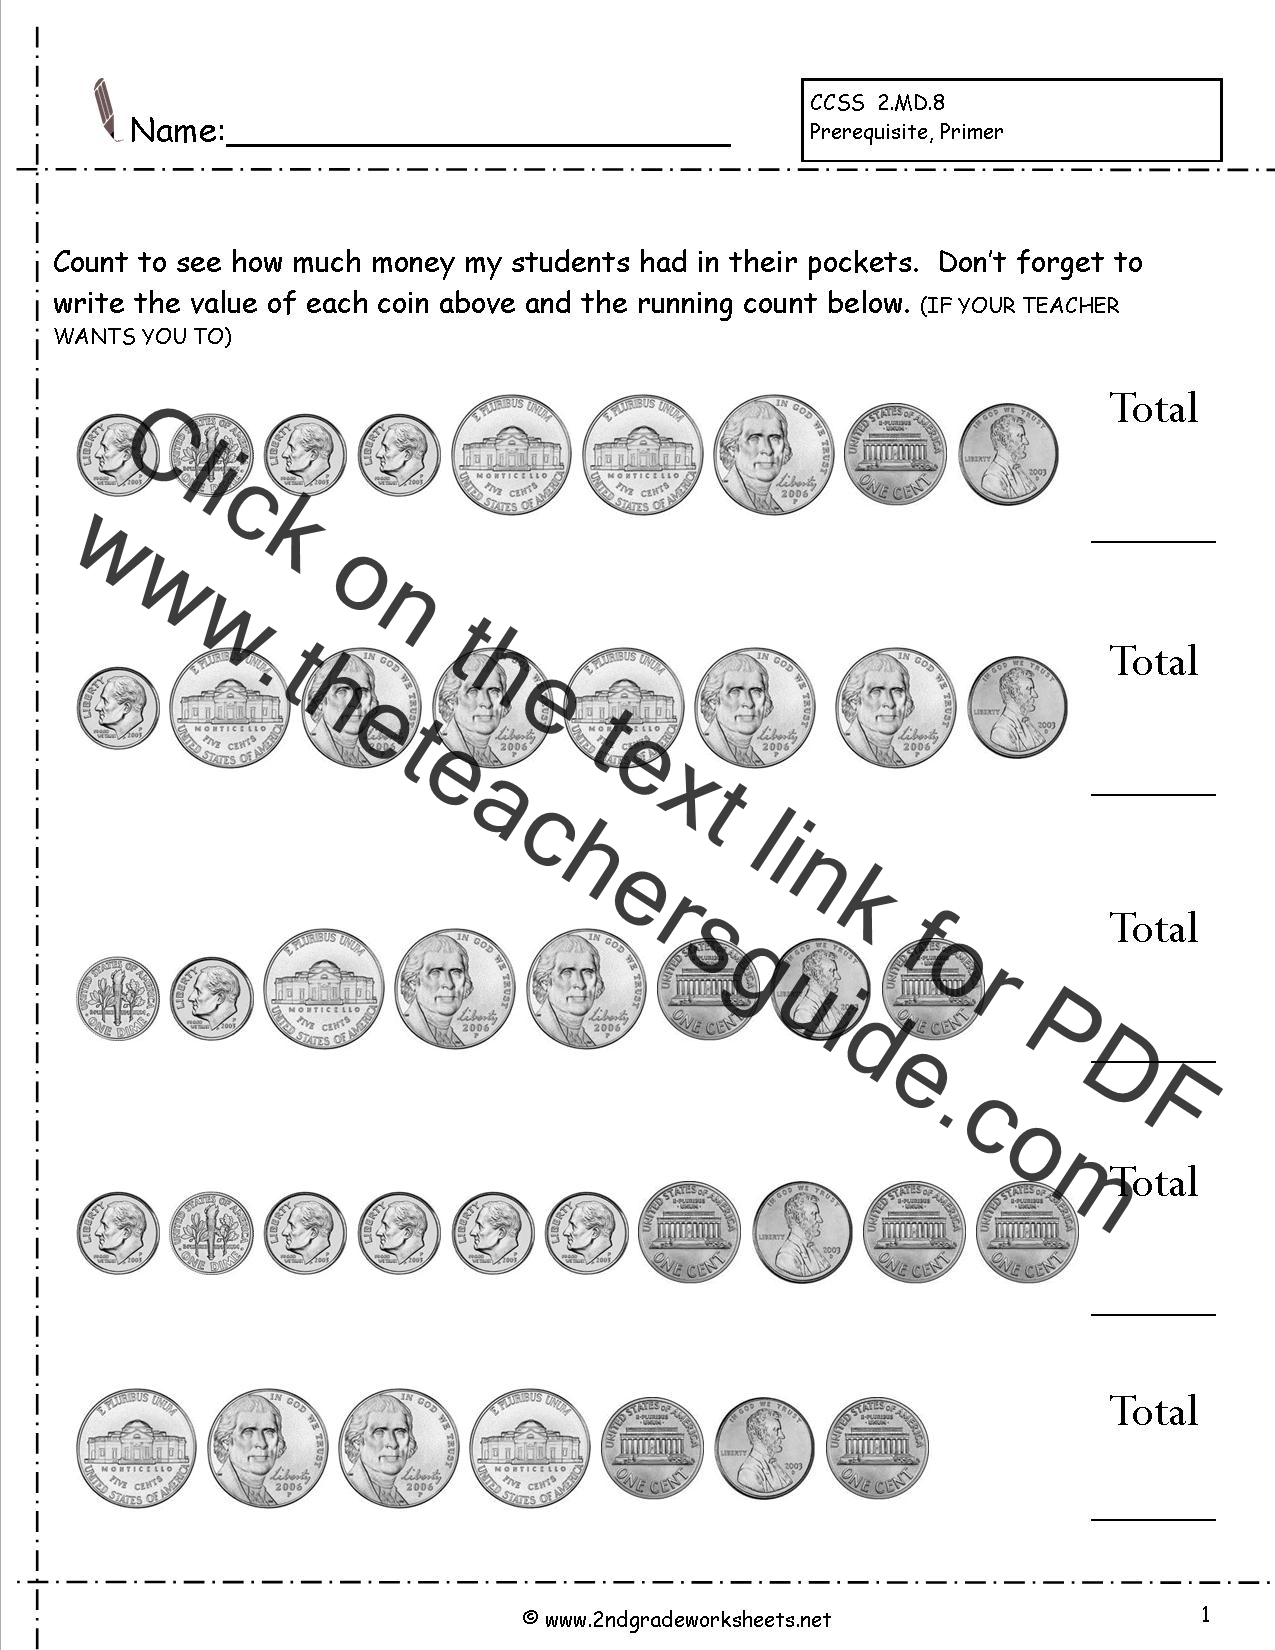 Worksheets Coins Worksheet counting coins and money worksheets printouts without quarters